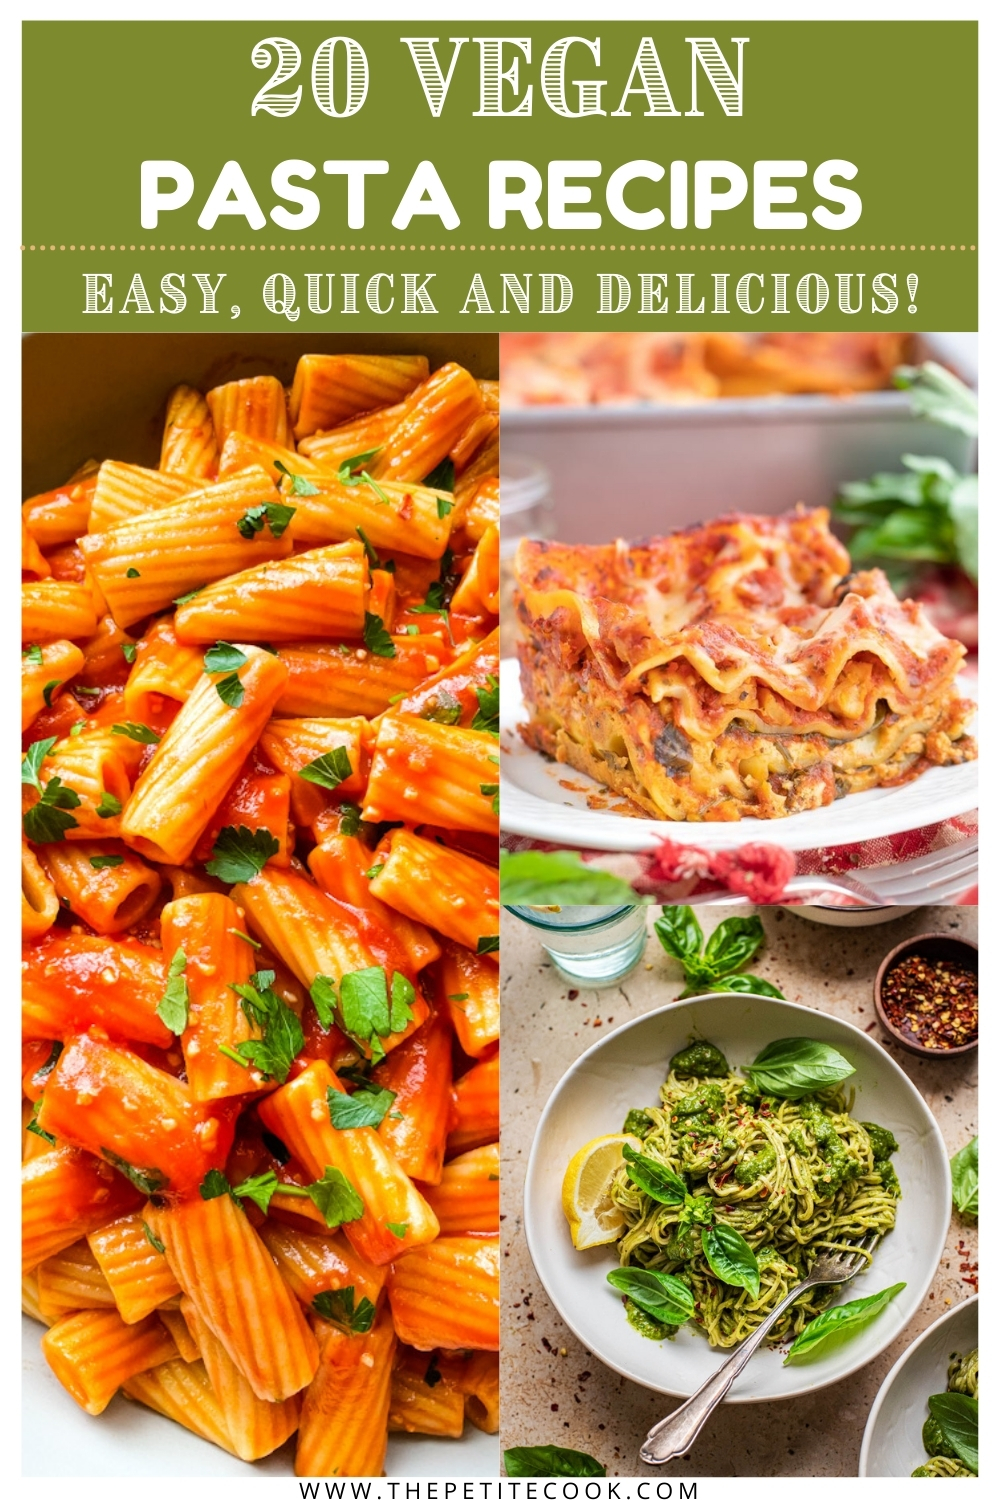 collage of vegan pasta images made for Pinterest.